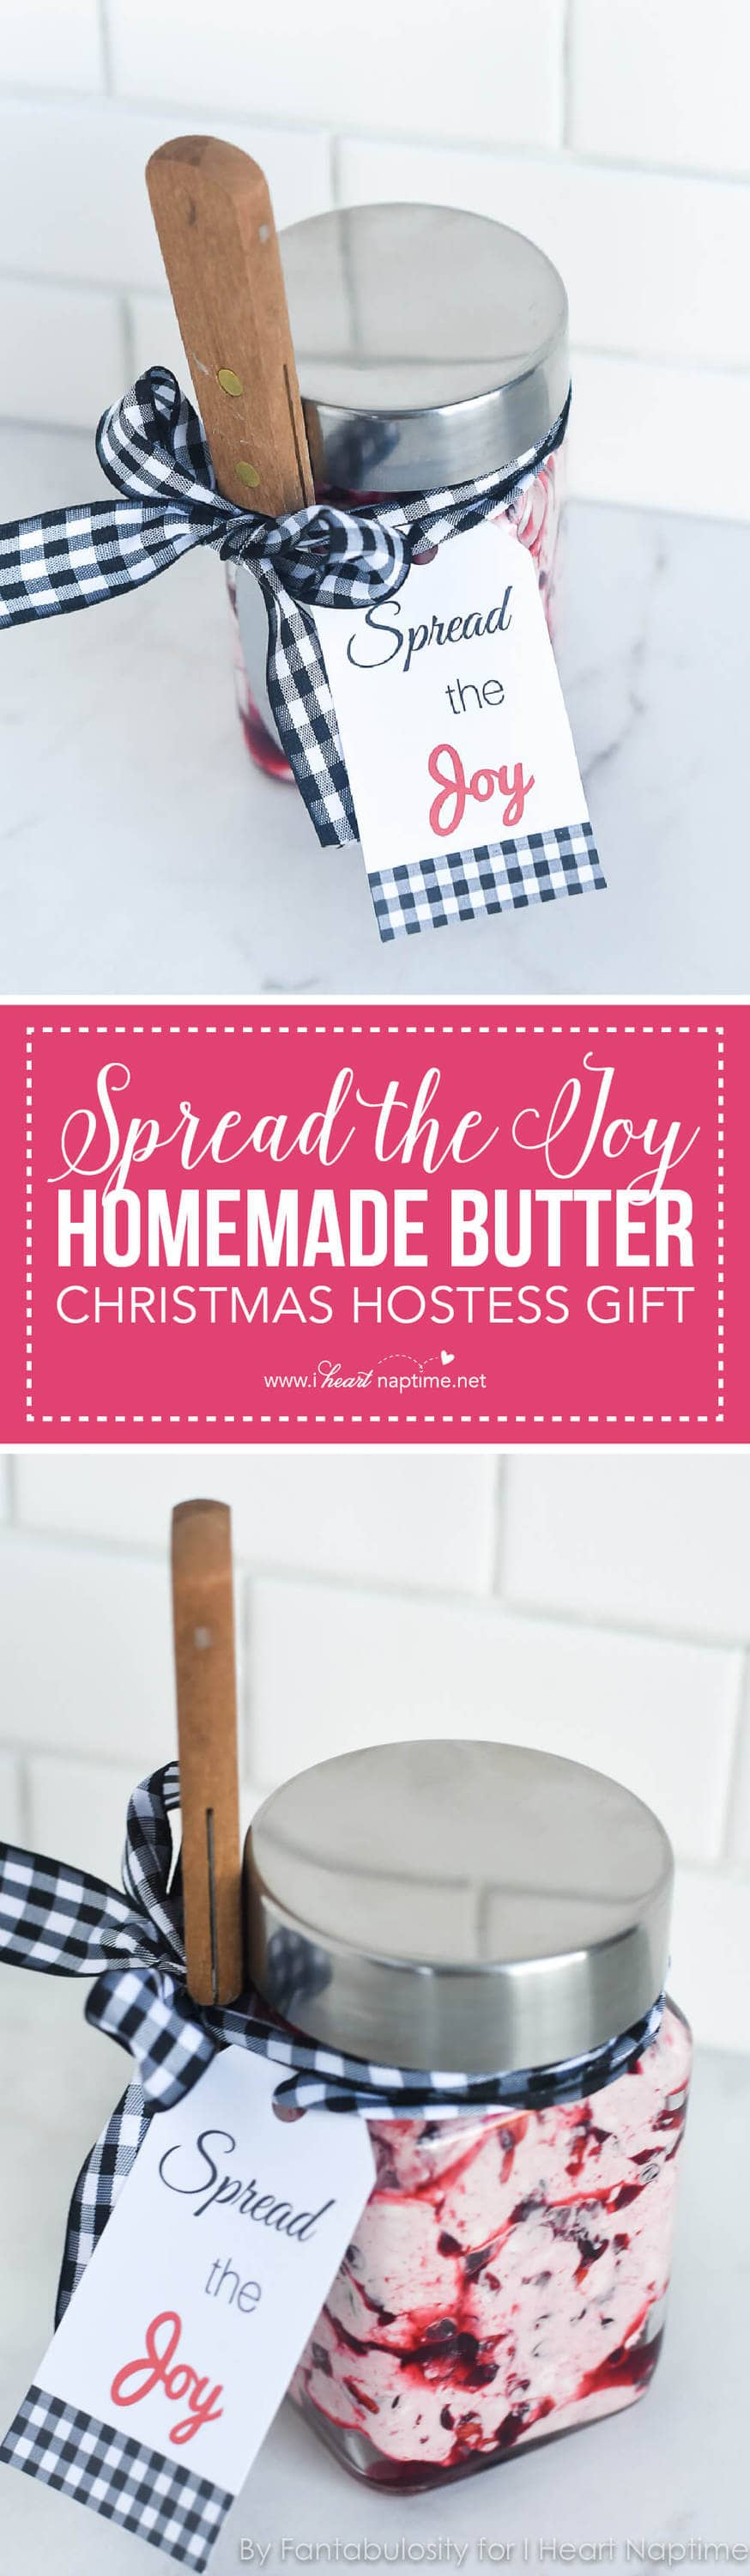 """""""Spread the Joy"""" Homemade Butter Christmas Hostess Gift... an adorable, easy gift to bring along with you, so the hostess can use it for dinner that night or save it for future meals!"""